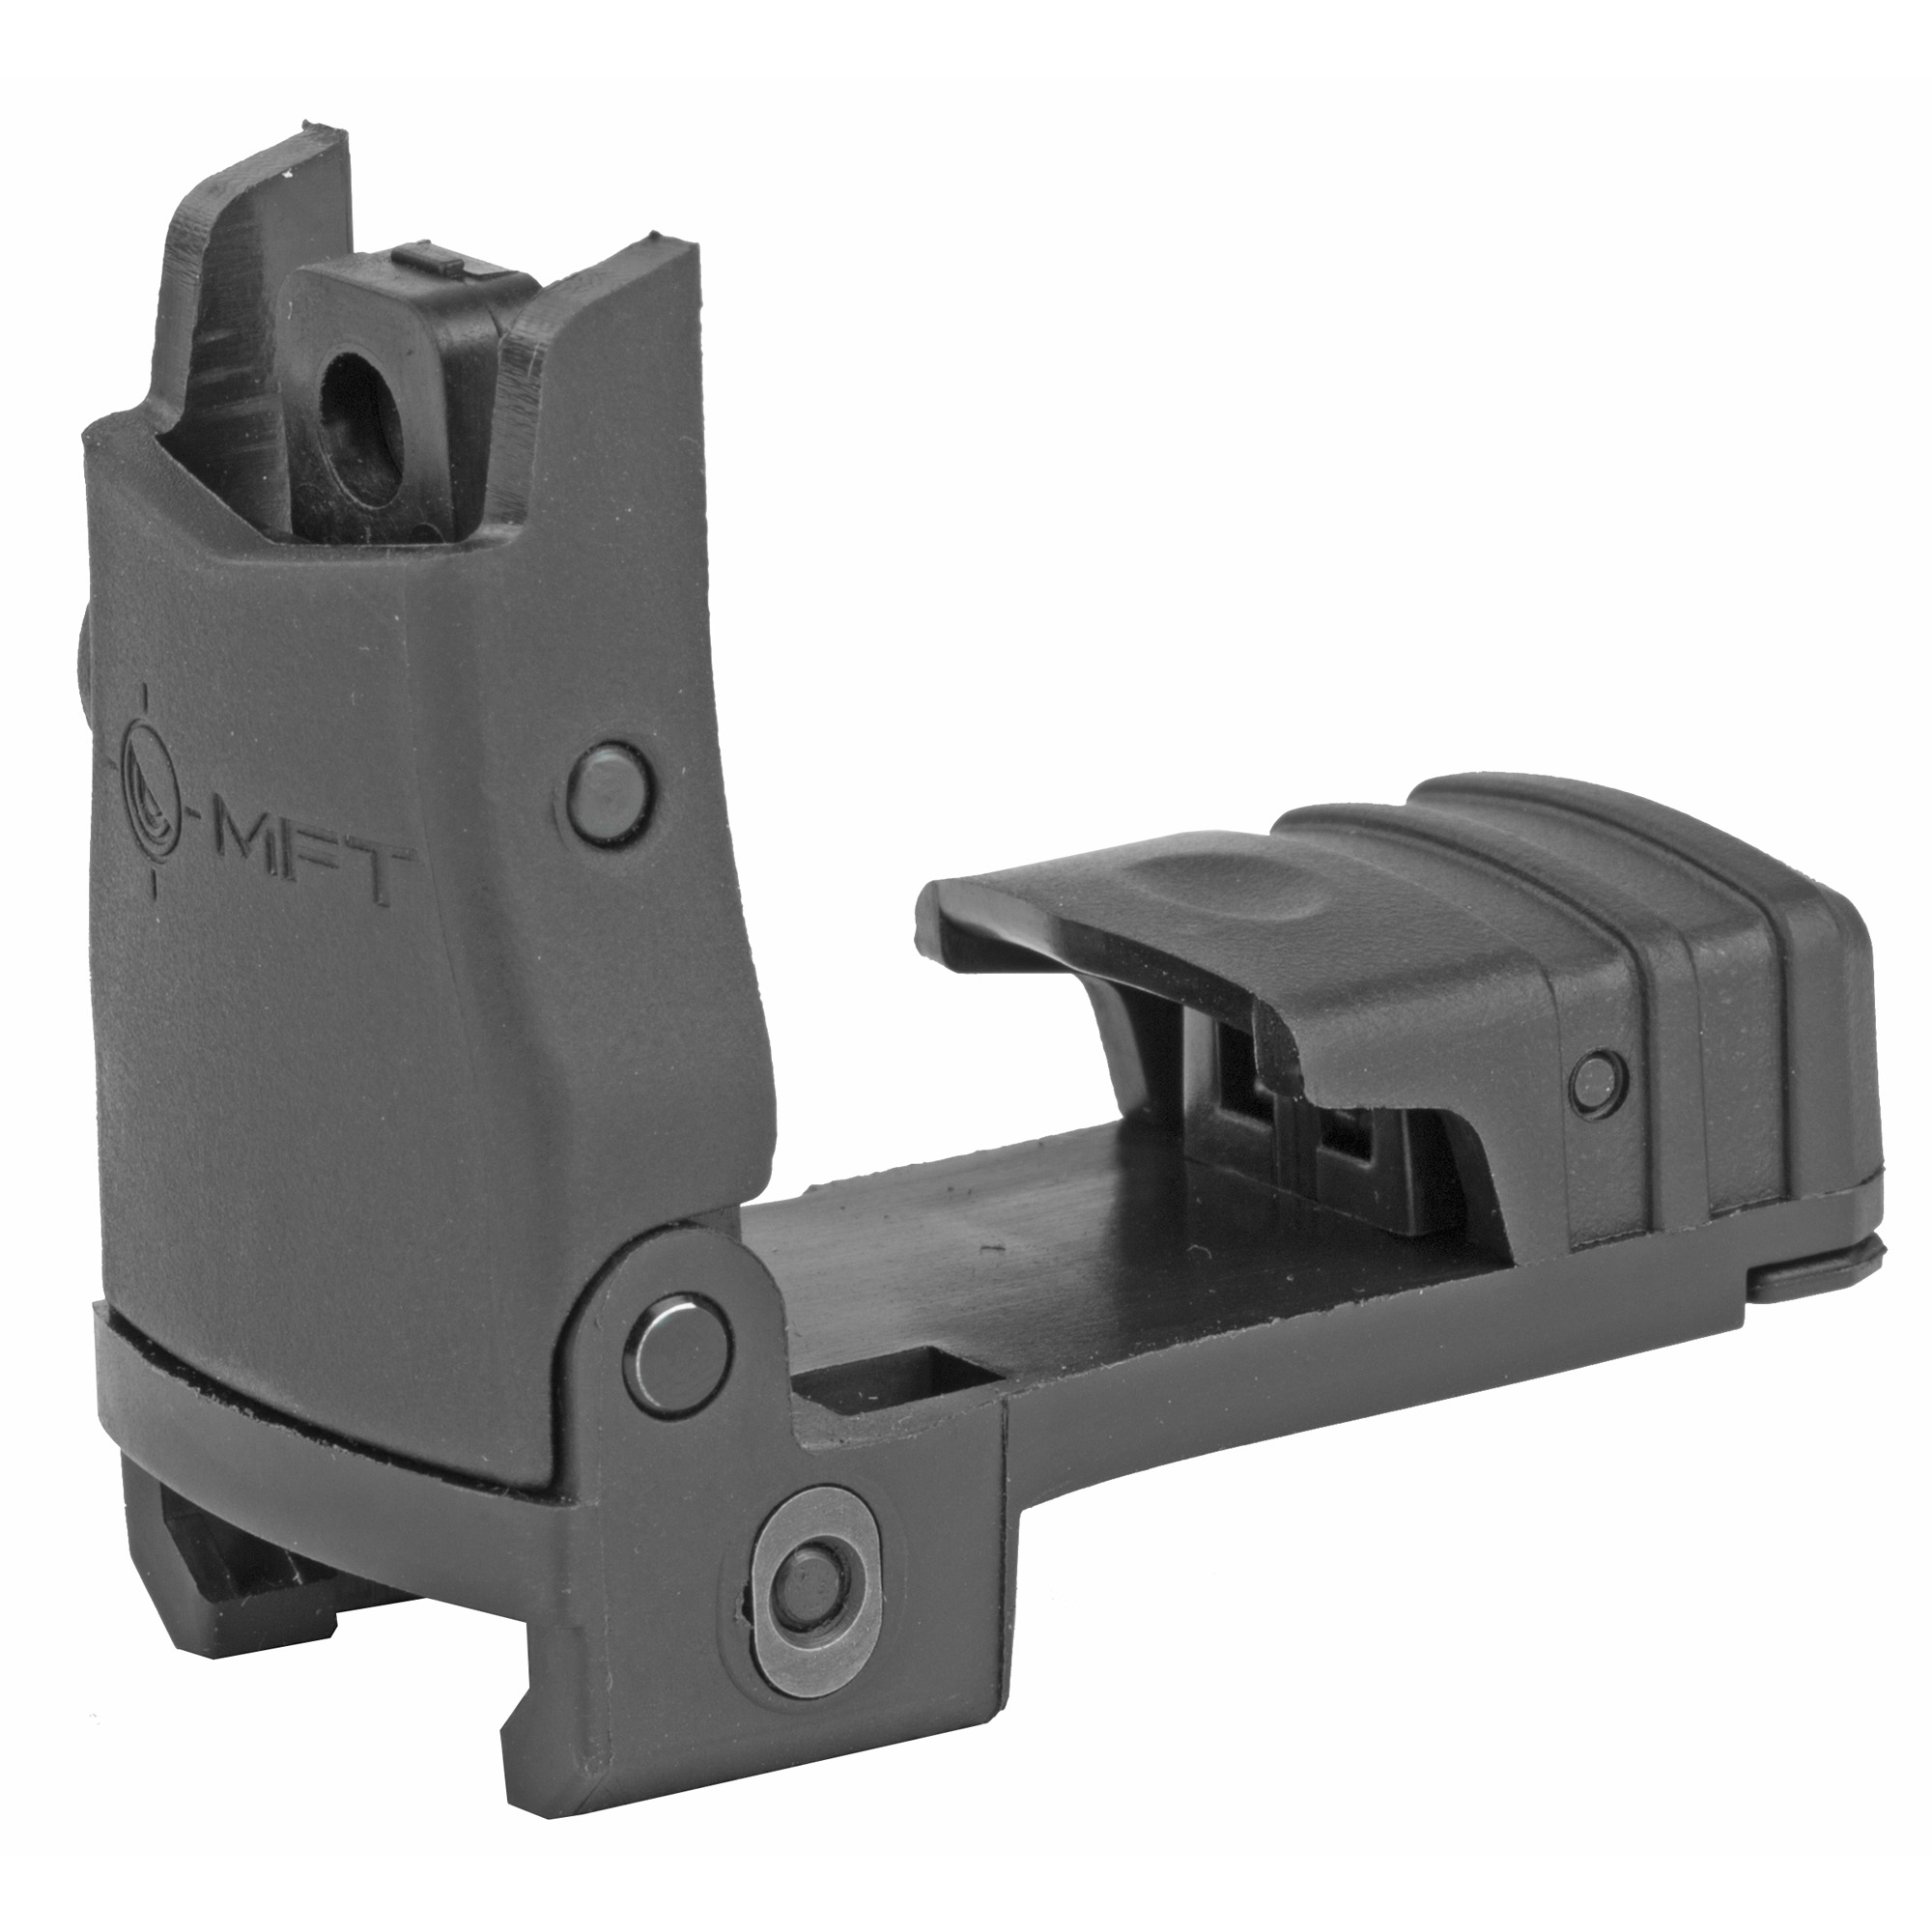 This Back Up Polymer Flip Up Rear Sight from MFT is a great addition to any AR sighting system. It mounts to any standard 1913 Mil-Spec Picatinny Rail and is adjustable for windage. When folded down and not in use it's shrouded and sheltered to protect the apertures from debris and impact. It has a slim no snag low profile. Dual peep same plane apertures are ready to give you the perfect co-witness with your reflex sight!